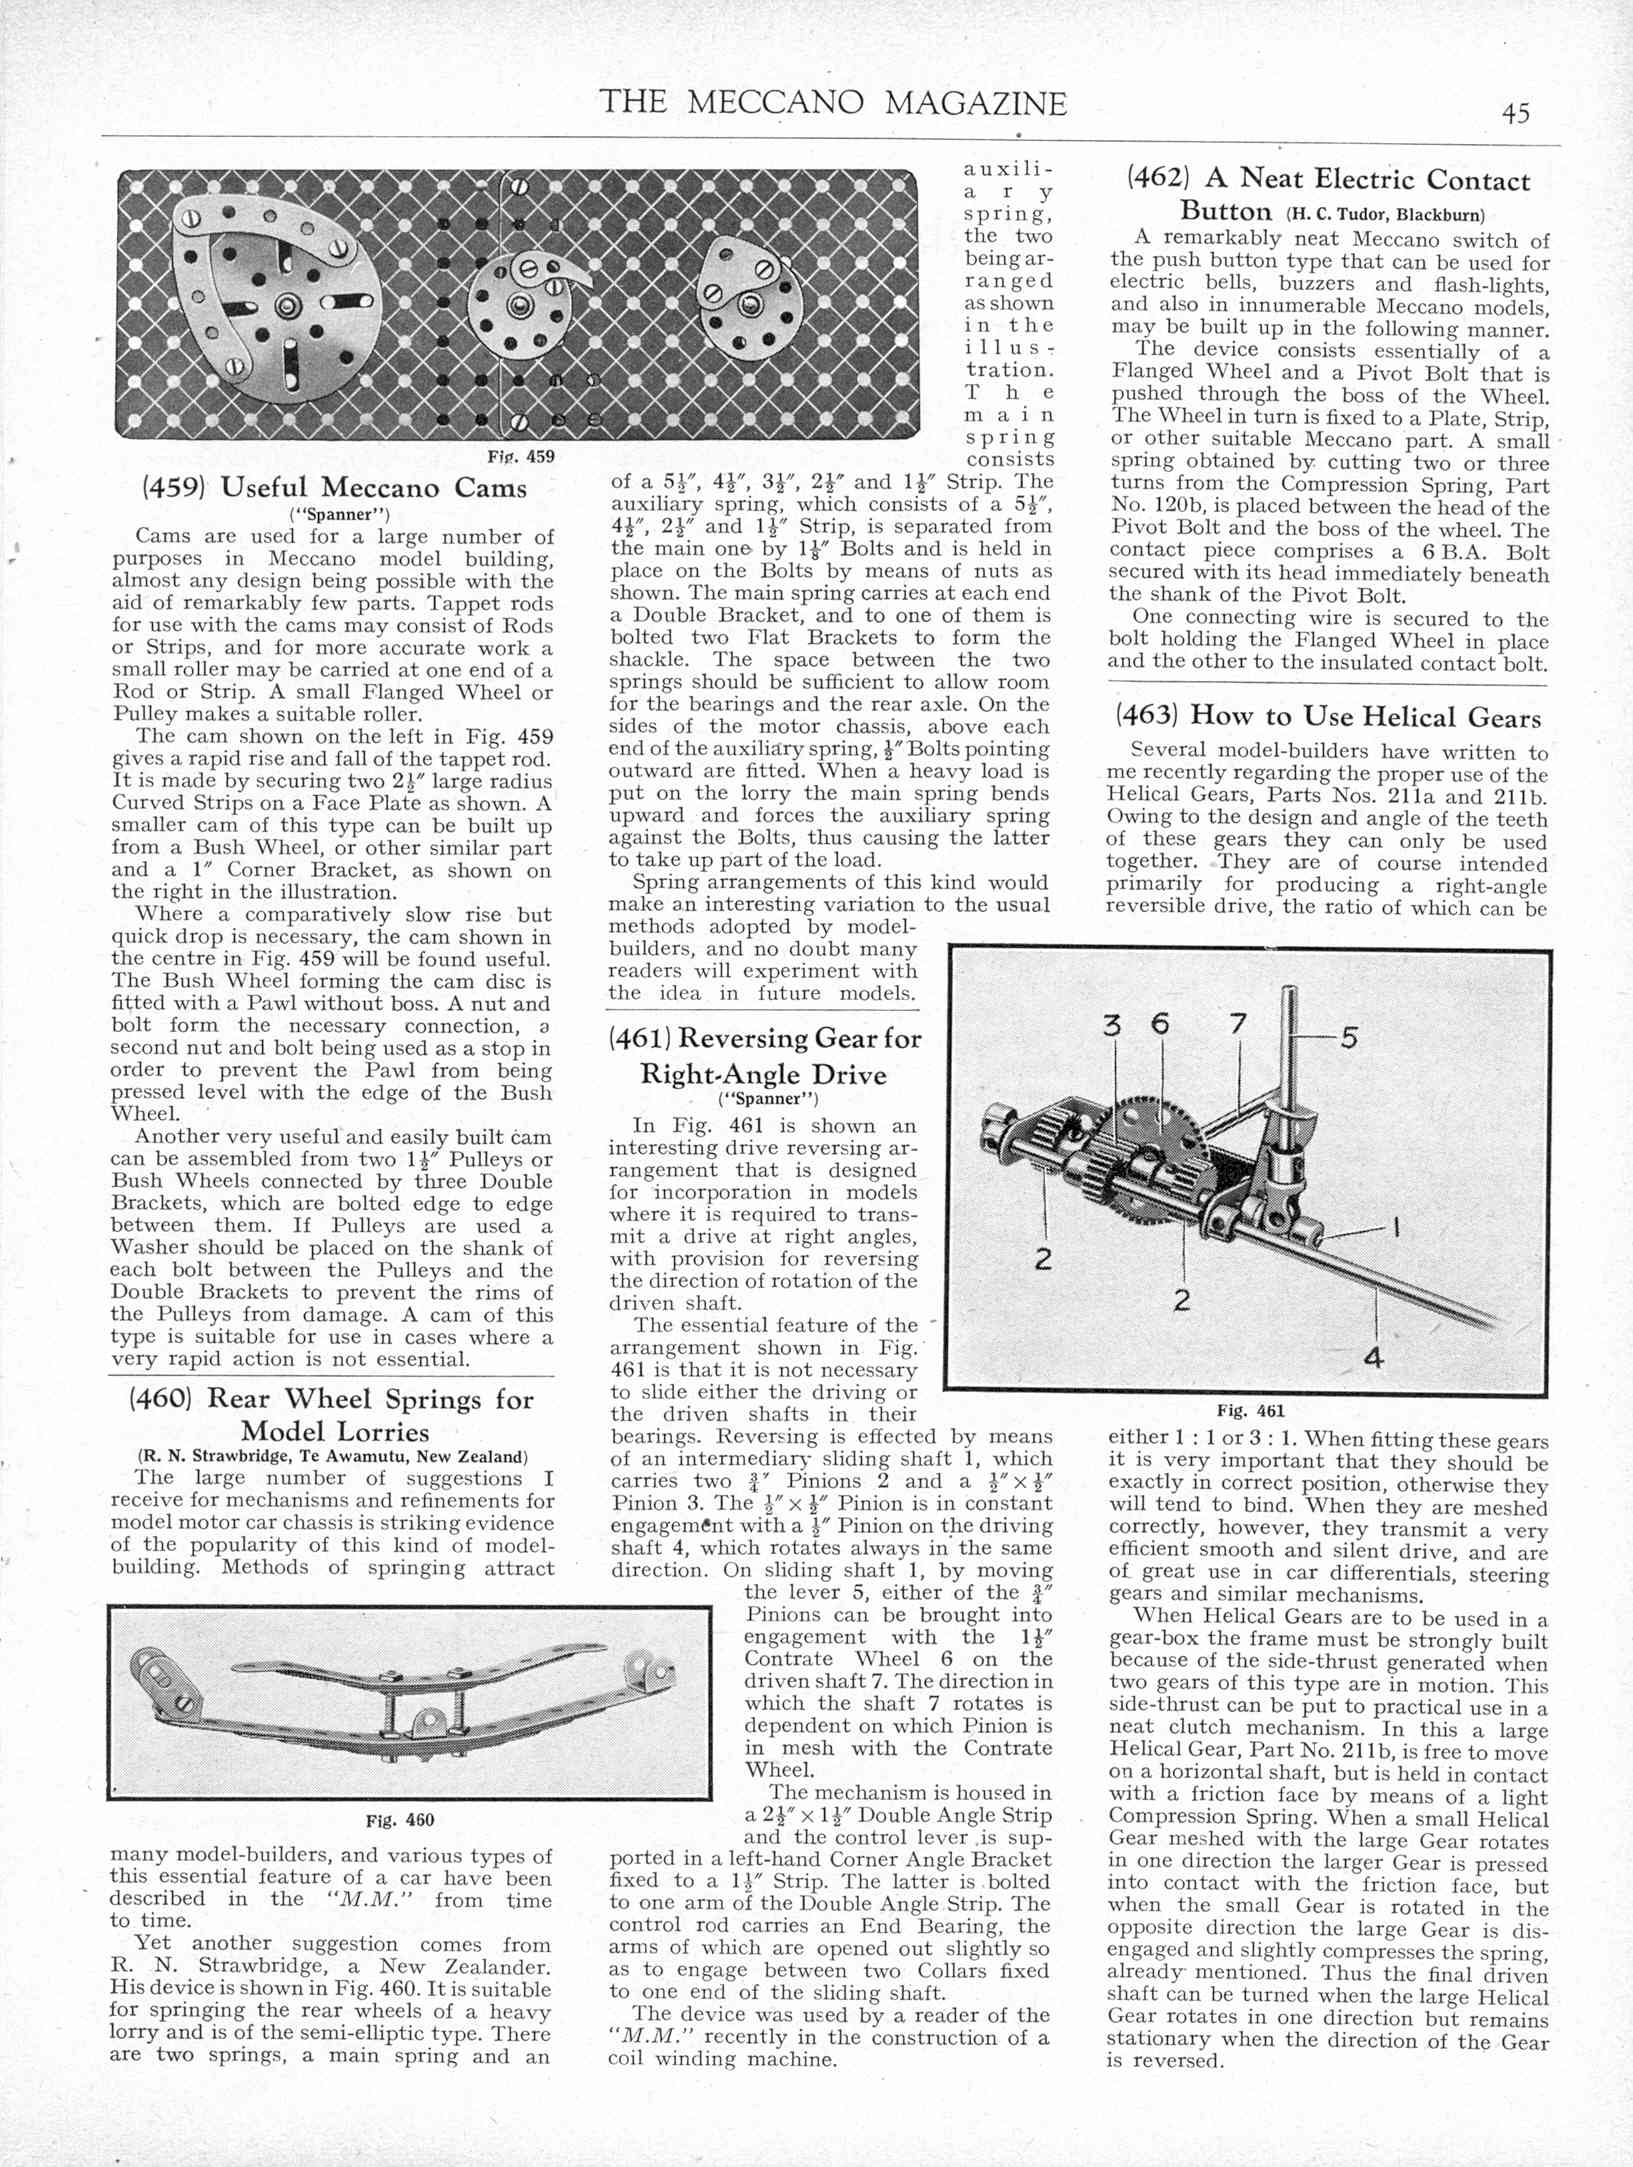 MM Jan 1940 Page 0045